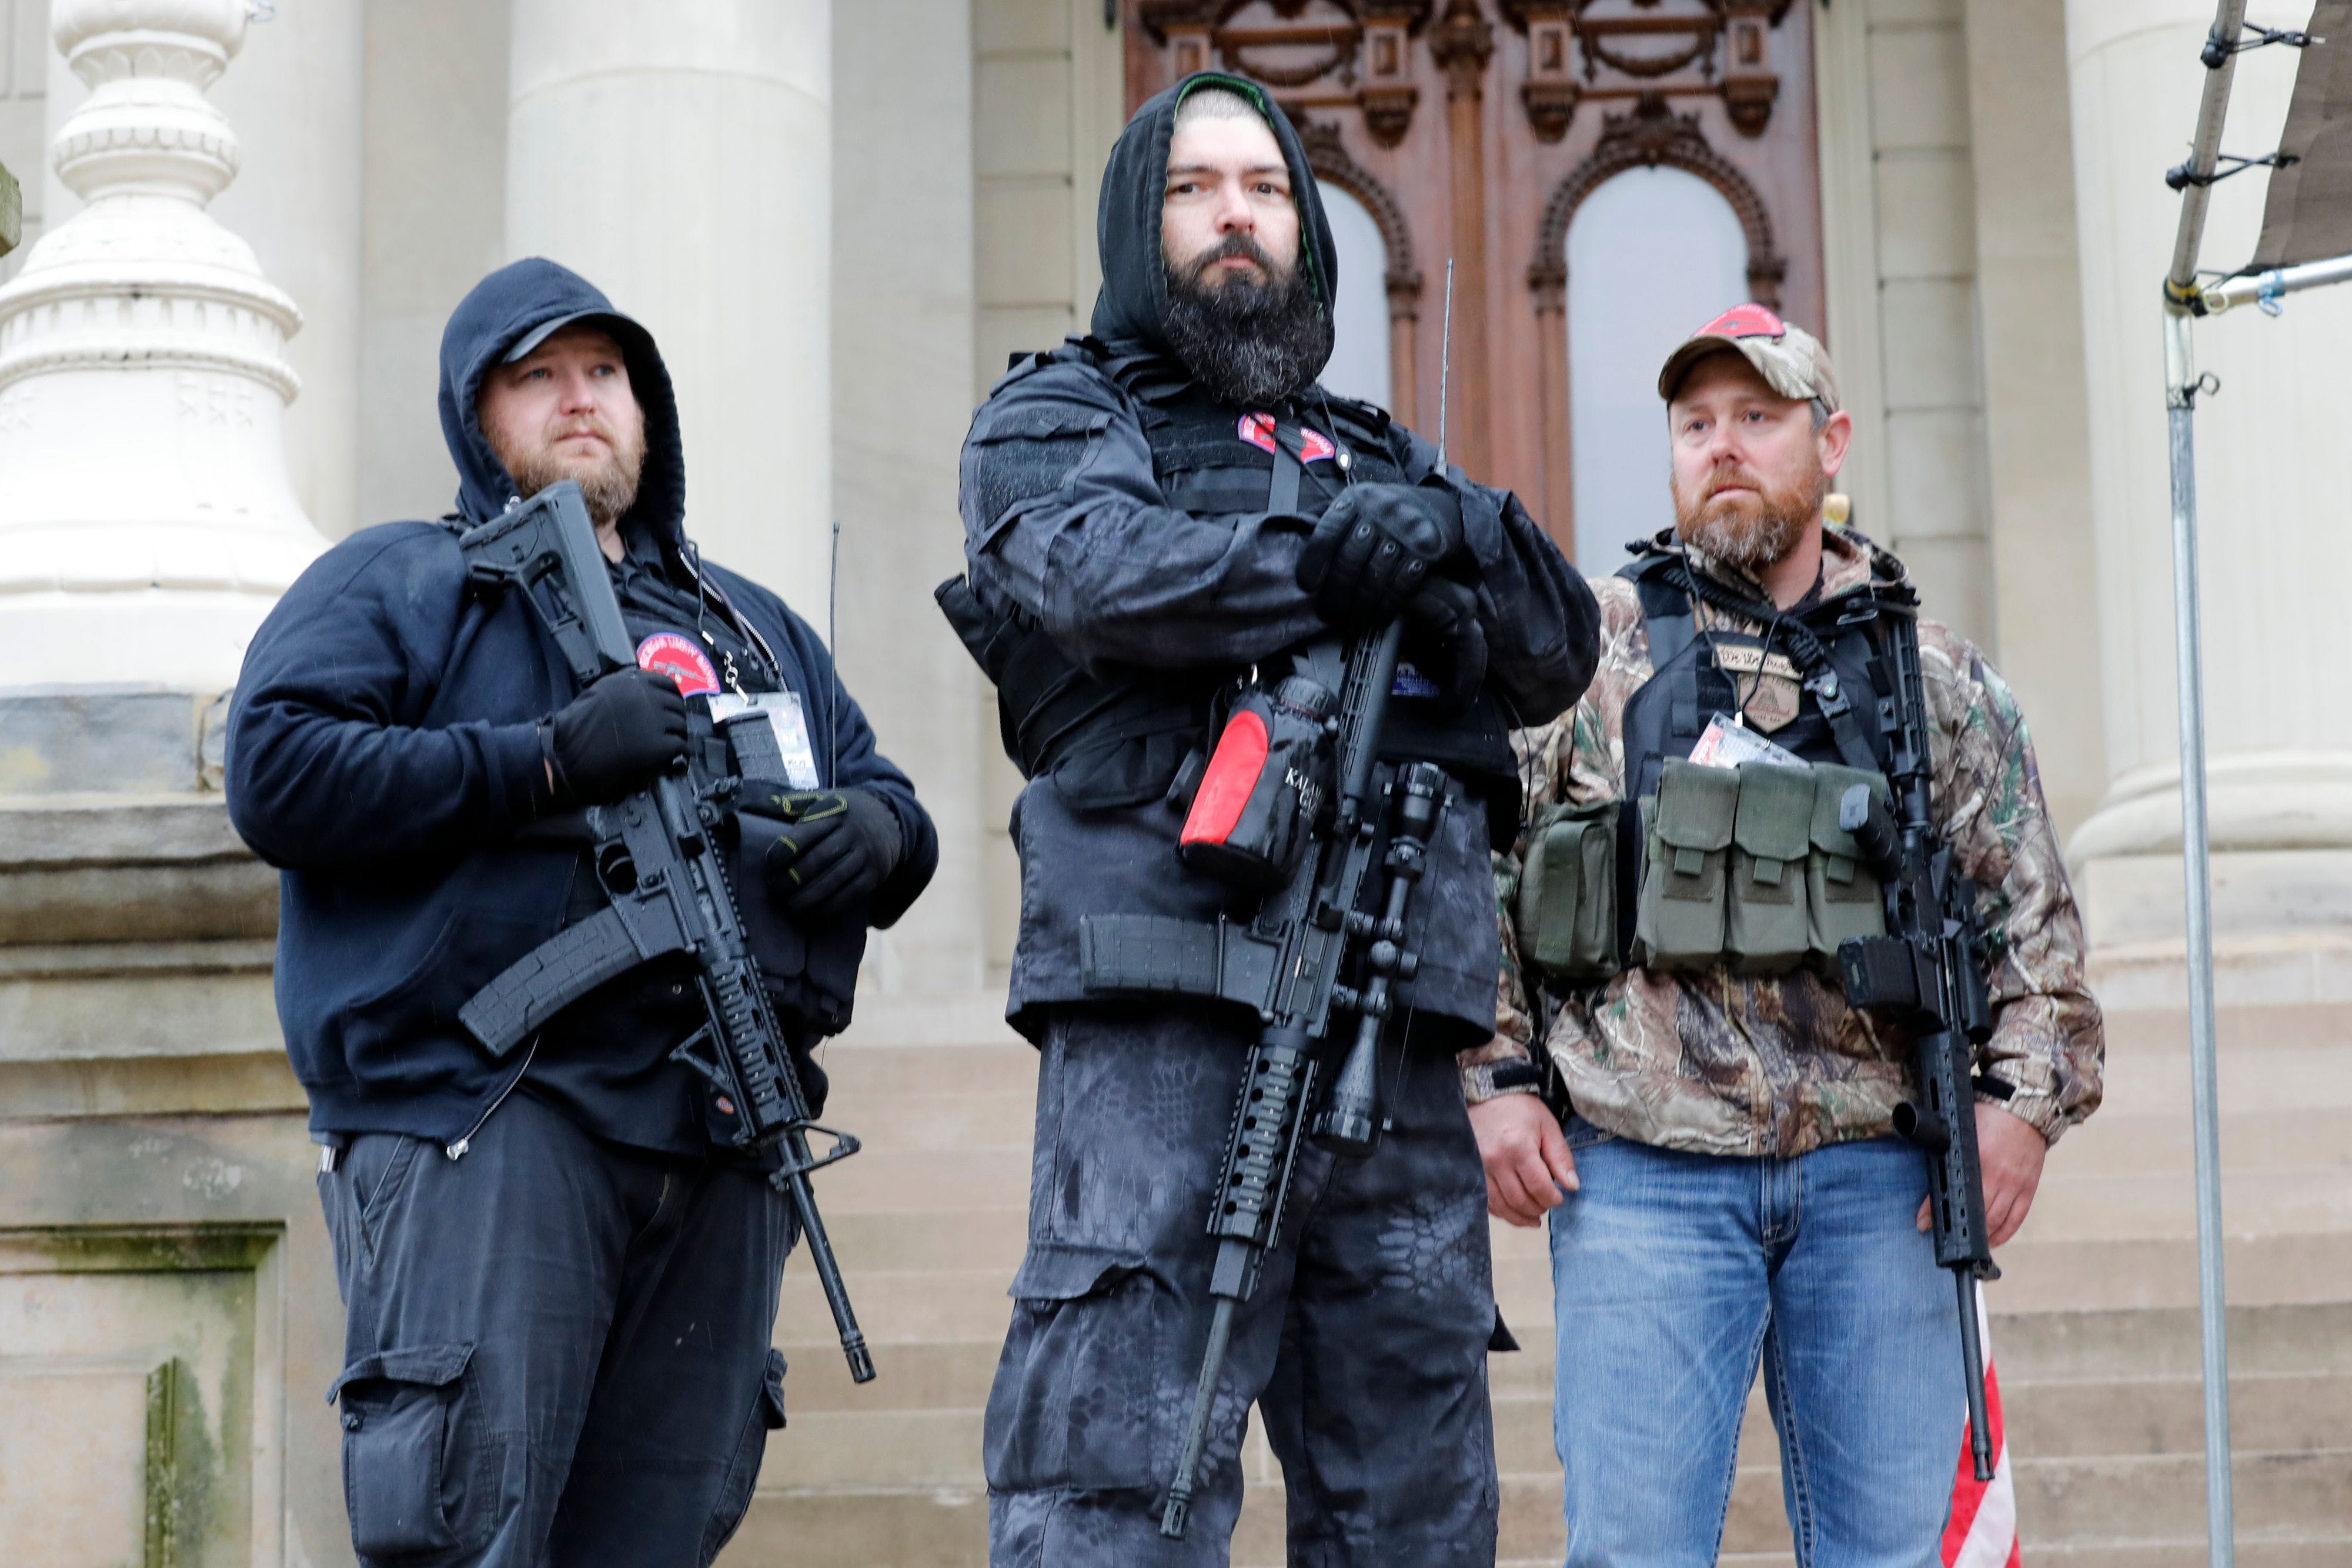 """Armed men take part in an """"American Patriot Rally,"""" organized on April 30, 2020, by Michigan United for Liberty on the steps of the Michigan State Capitol in Lansing, demanding the reopening of businesses. (Photo by JEFF KOWALSKY / AFP) (Photo by JEFF KOWALSKY/AFP via Getty Images)"""